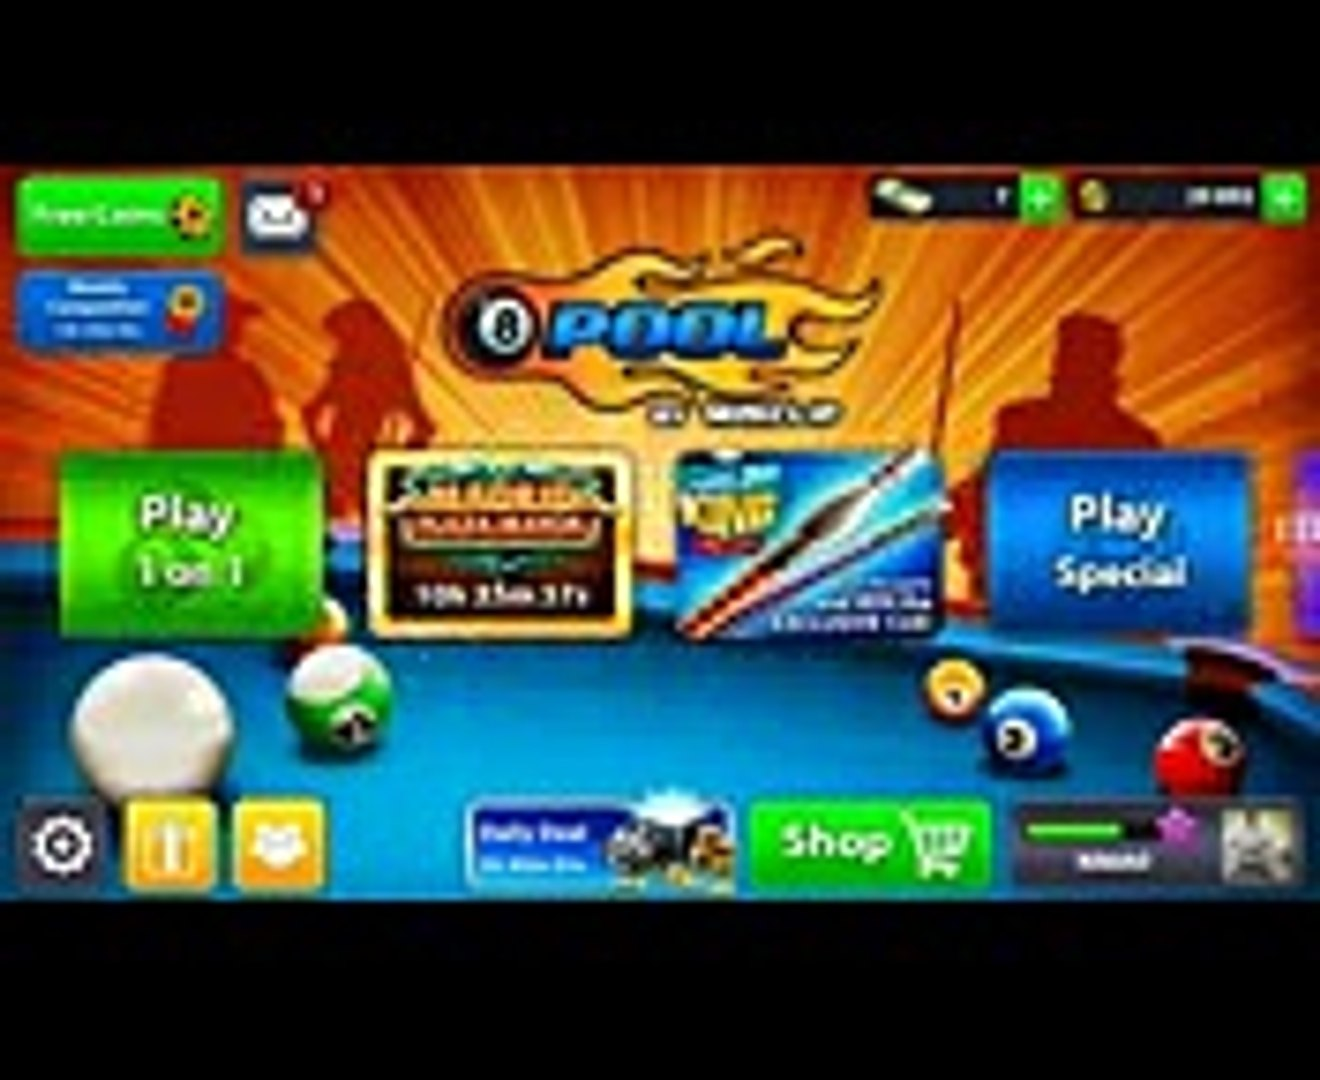 Get 156 cash 30k coins and free vip points 8 ball pool